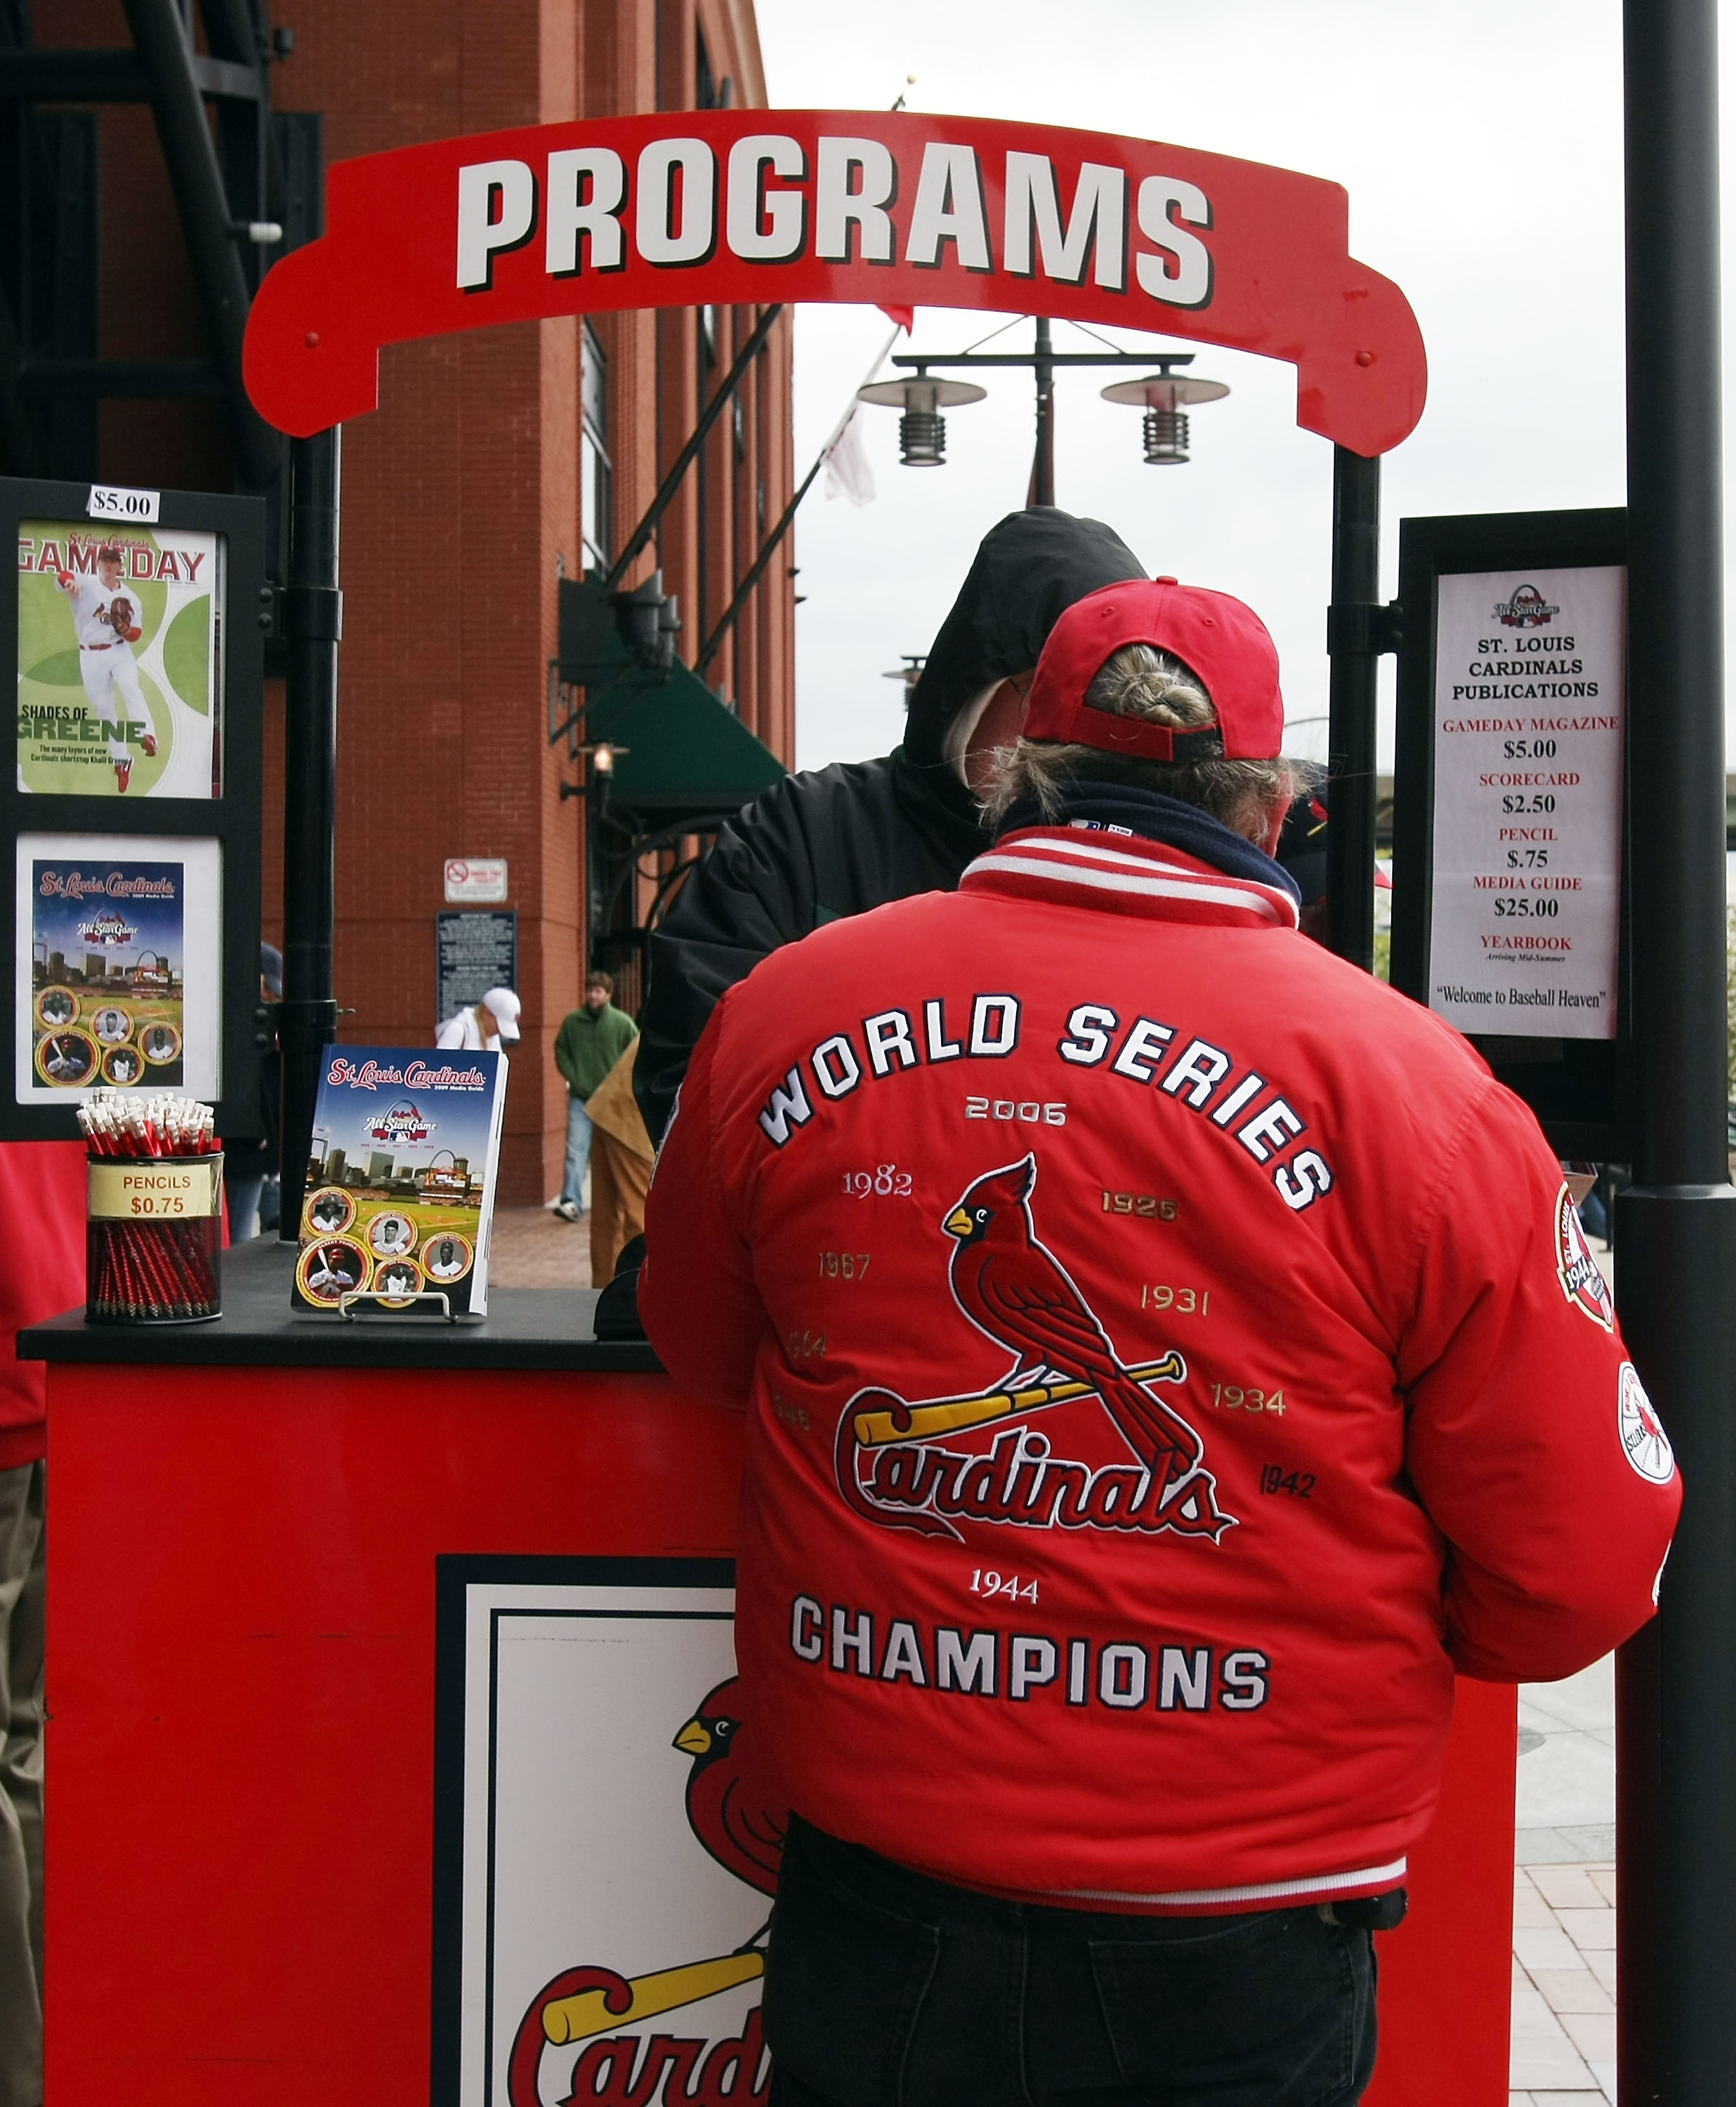 ST. LOUIS - APRIL 06:  Fans buy programs before the game between the St. Louis Cardinals and the Pittsburgh Pirates during Opening Day on April 6, 2009  at Busch Stadium in St. Louis, Missouri.  (Photo by Elsa/Getty Images)